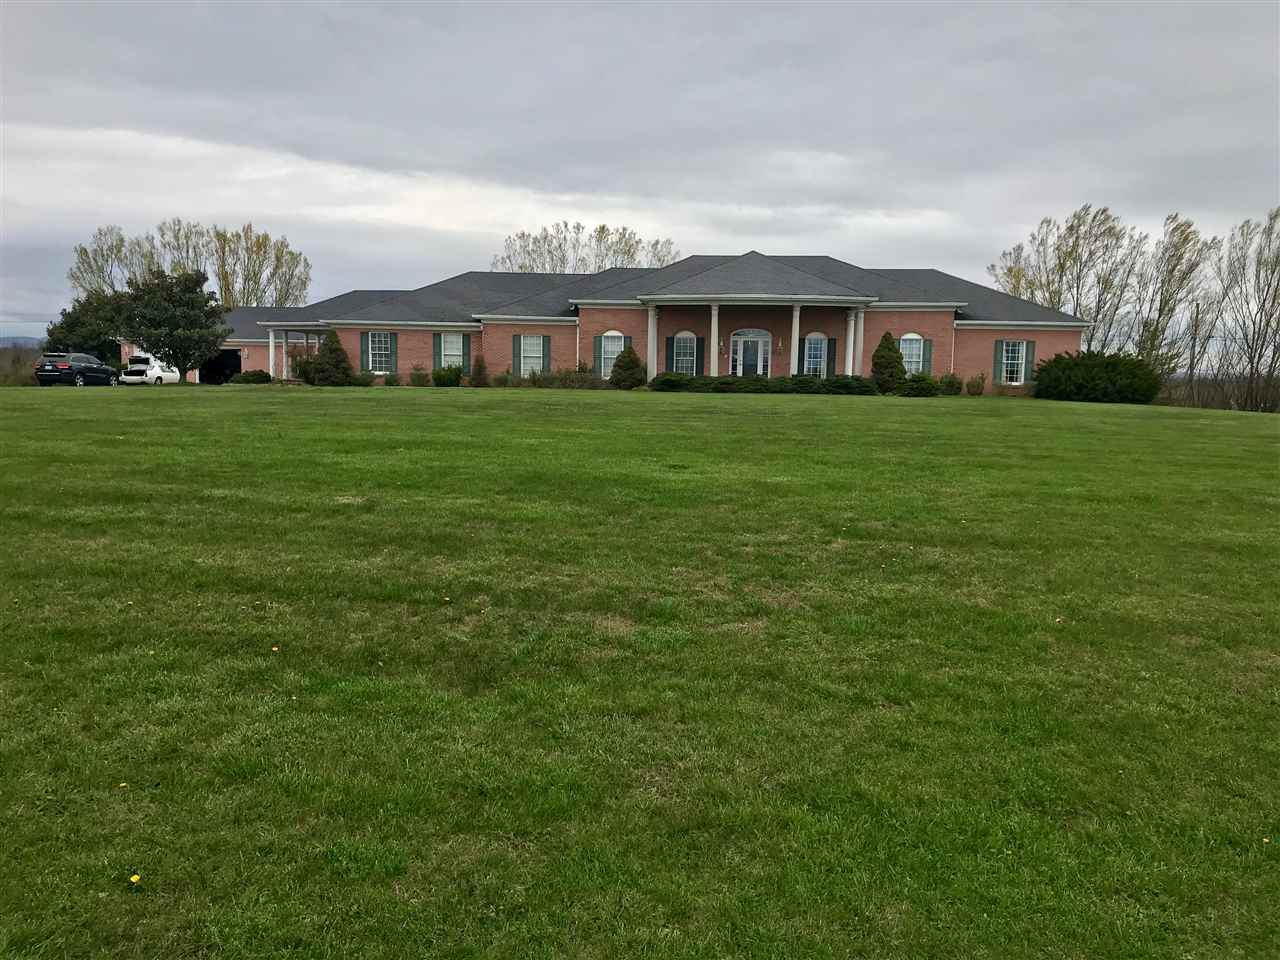 Photo 1 for 152 Herndon Ln Berea, KY 40403